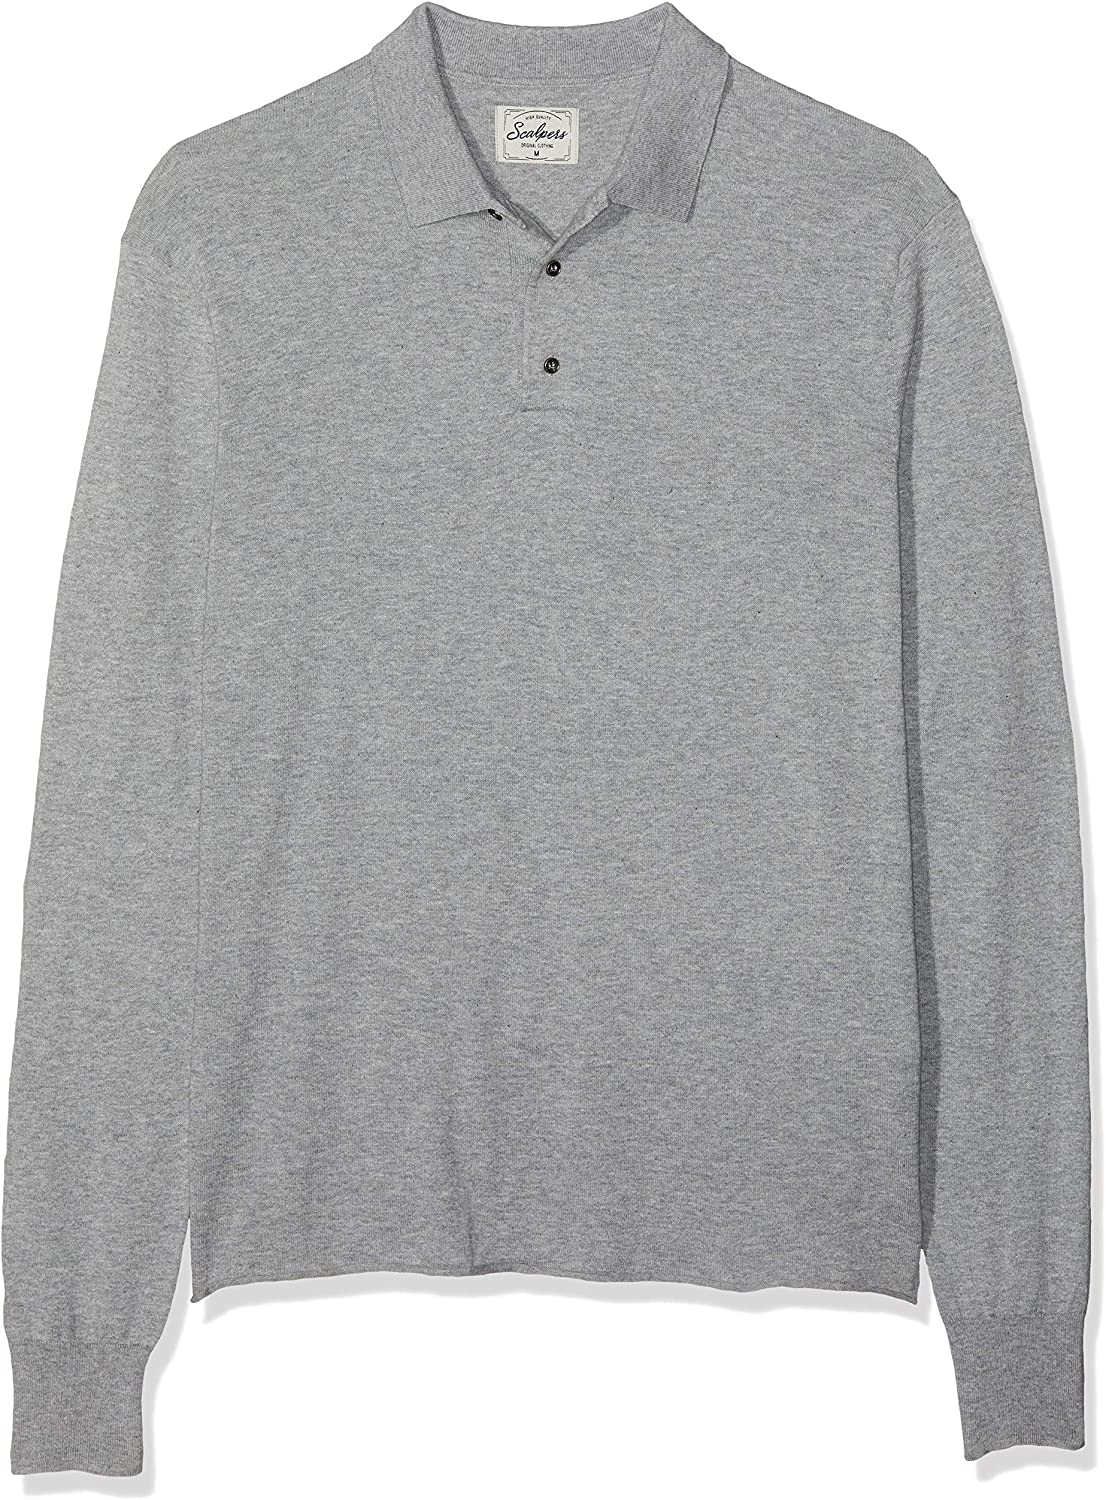 Scalpers LS Summer Polo Tricot Jersey para Hombre: Amazon.es: Ropa ...